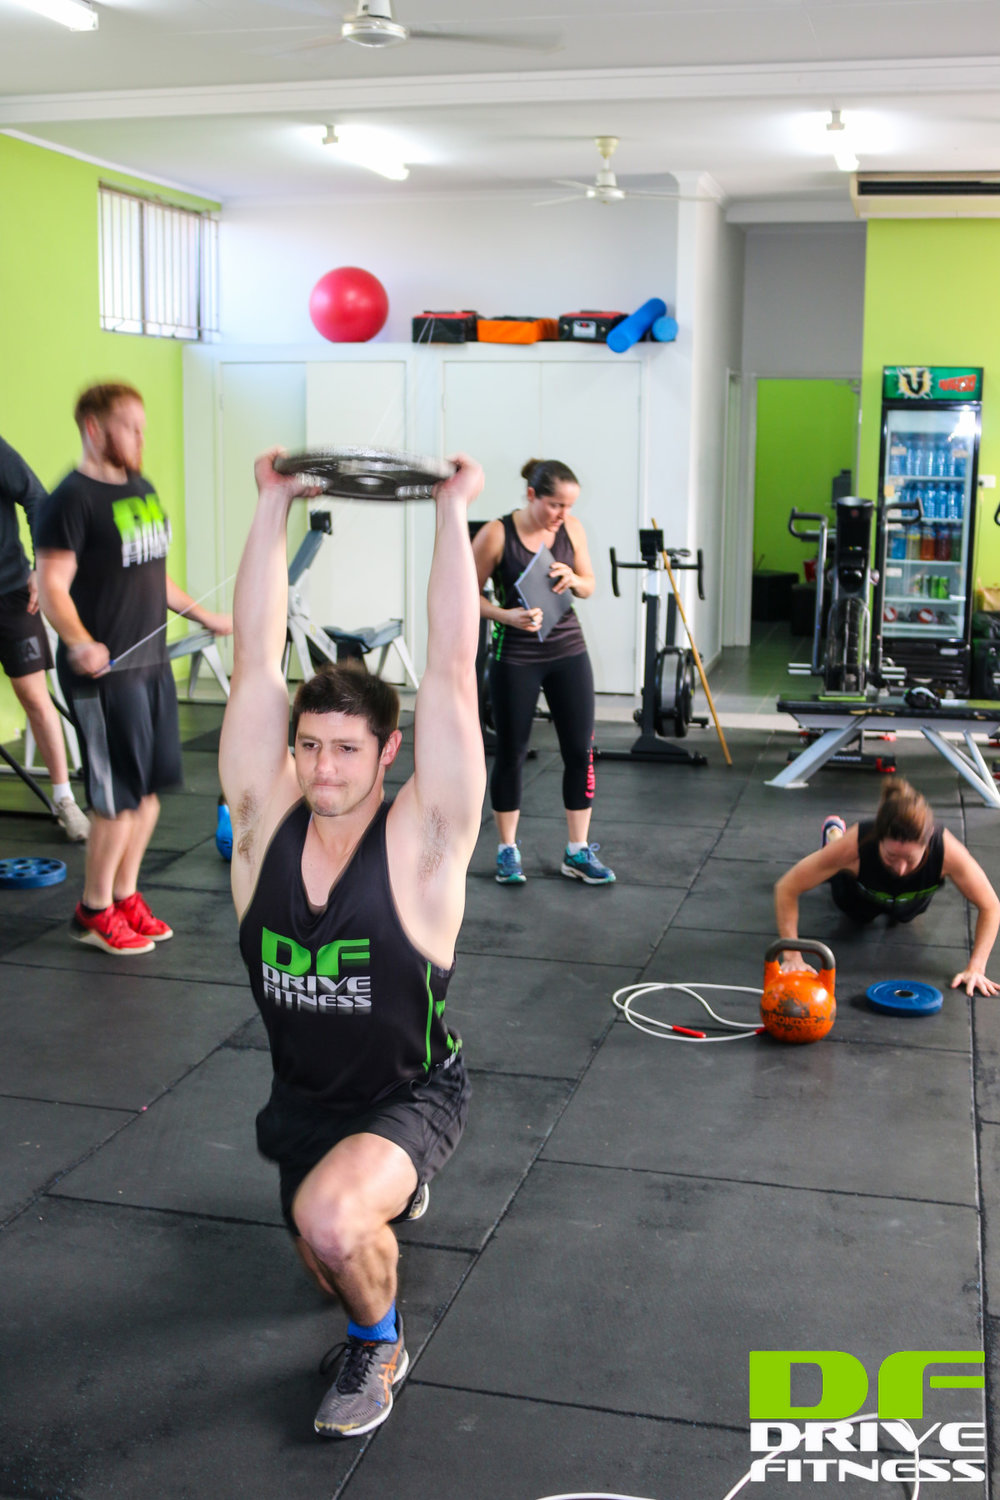 drive-fitness-personal-training-brisbane-4wws-2018 (2 of 34).jpg